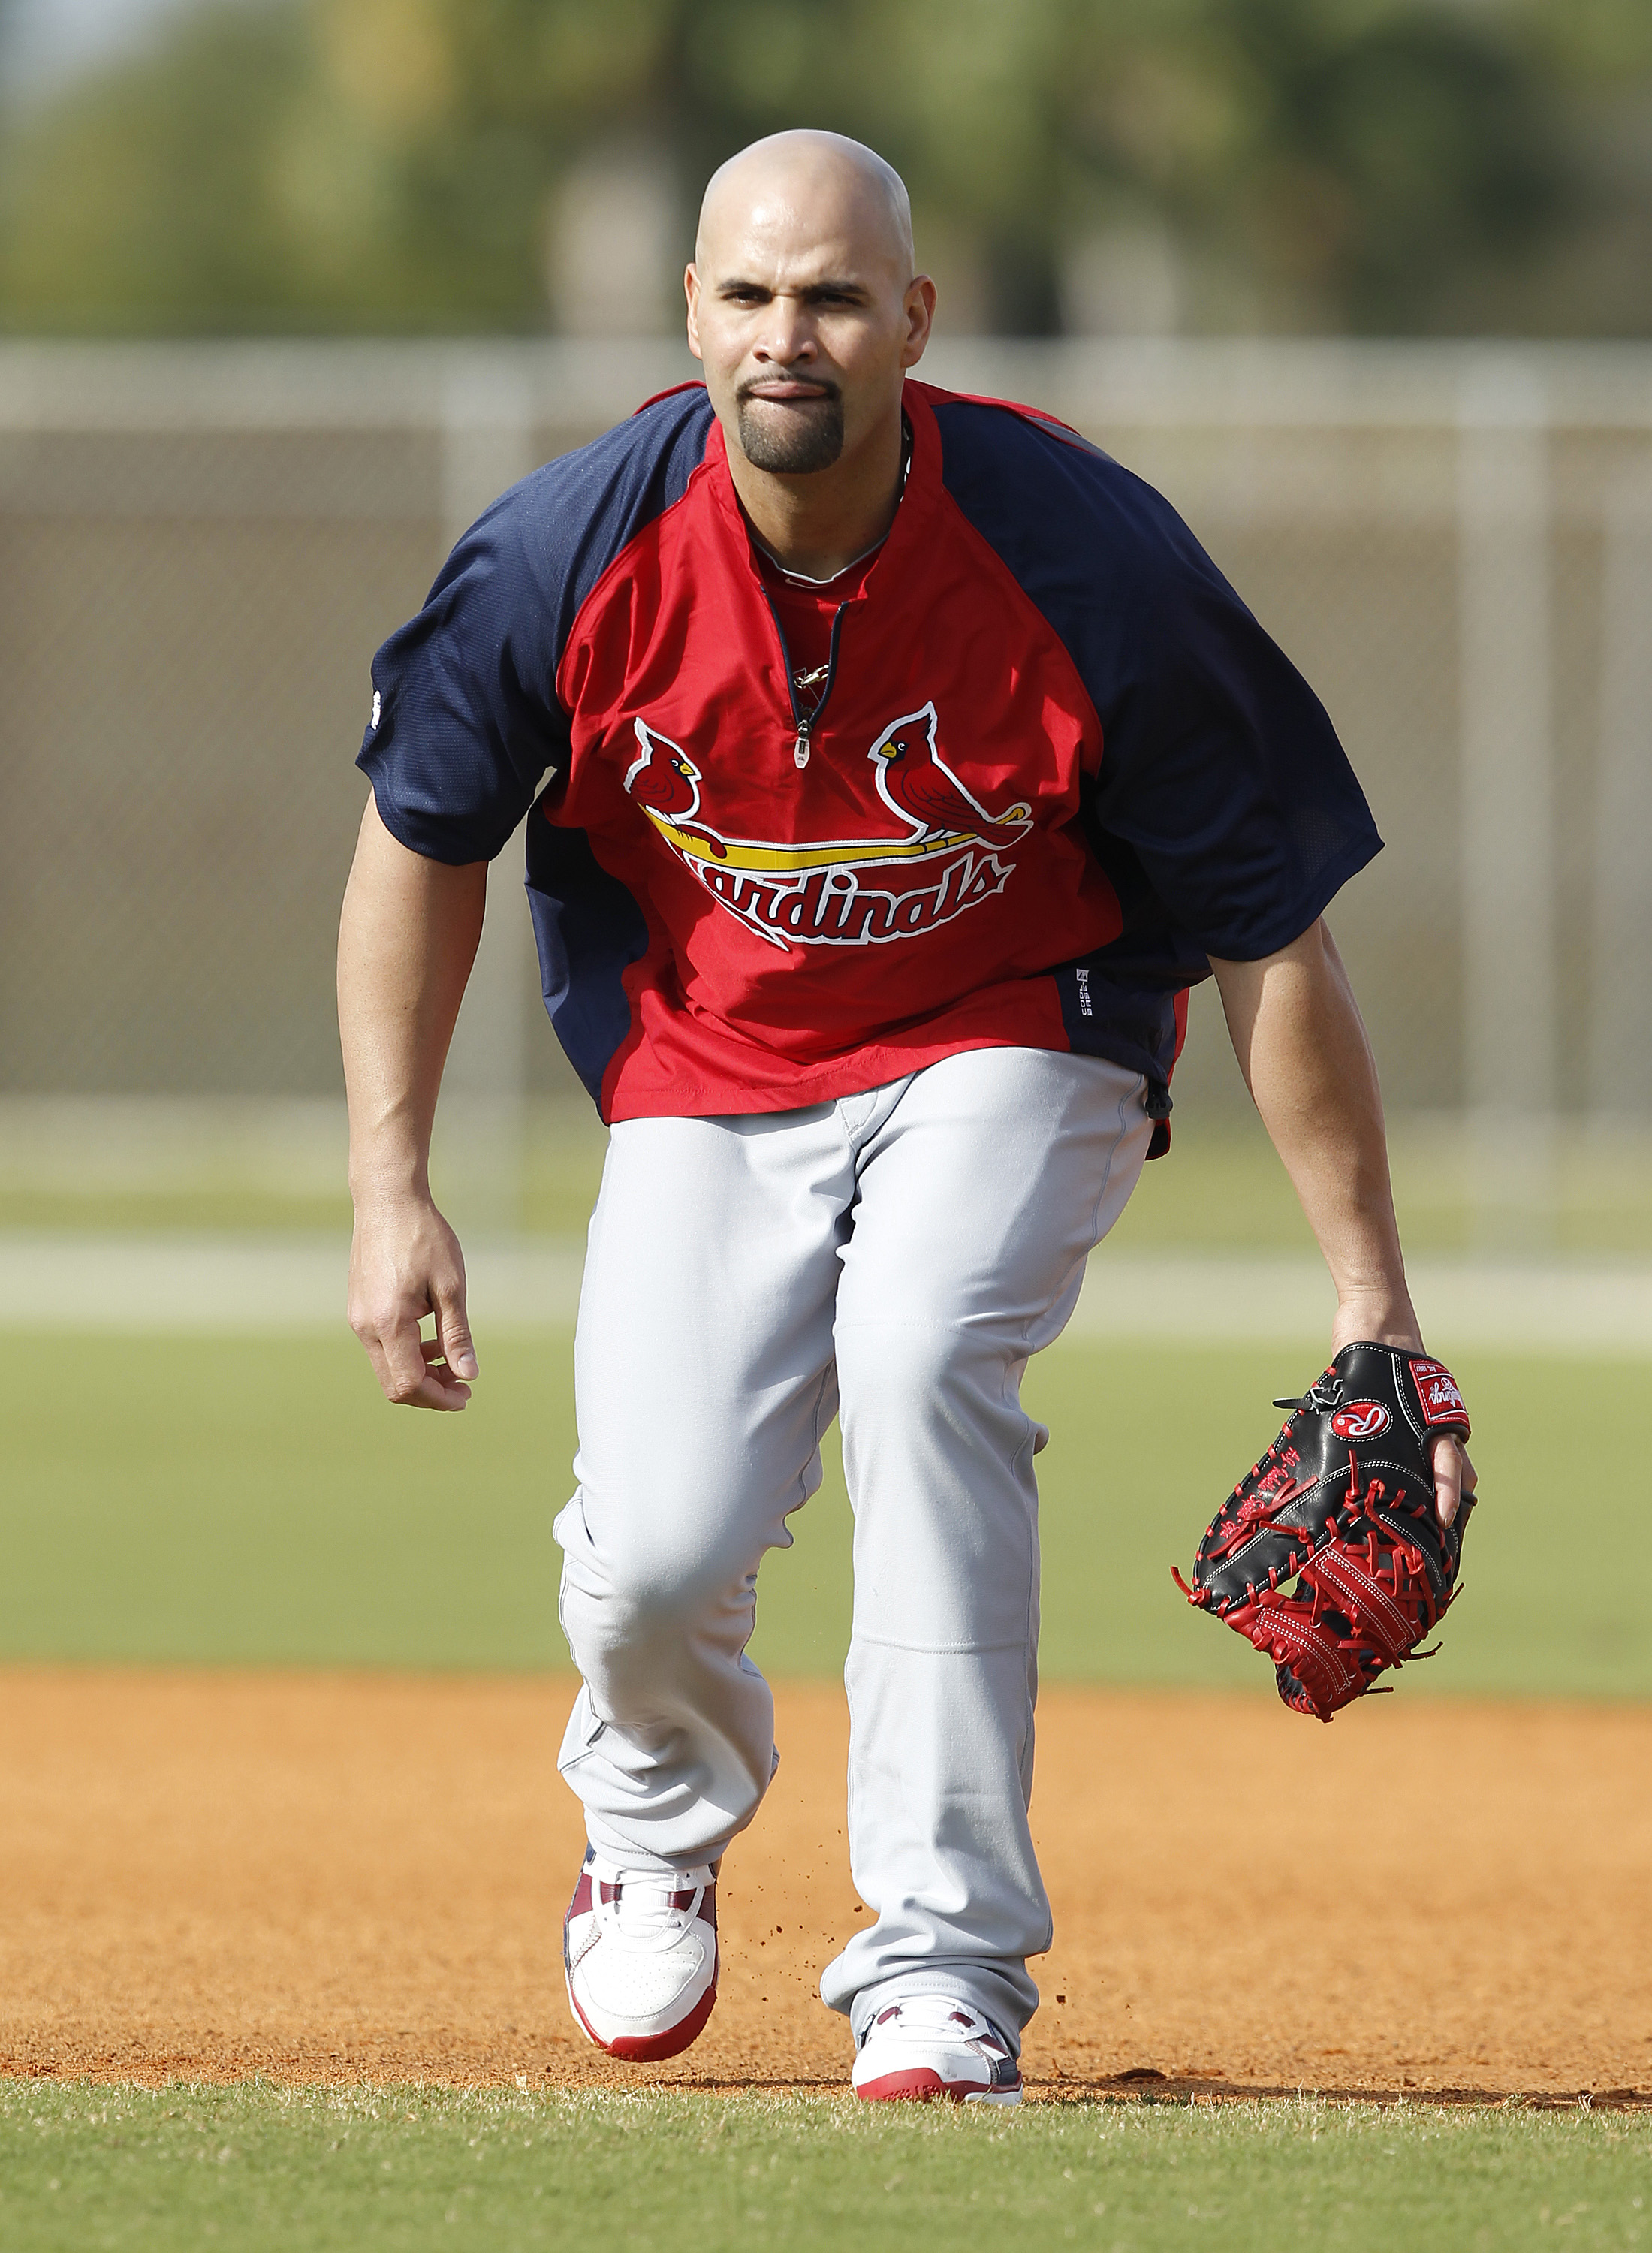 JUPITER, FL - FEBRUARY 17: Albert Pujols # 5 of the St. Louis Cardinals takes fielding practice at Roger Dean Stadium on February 17, 2011 in Jupiter, Florida. (Photo by Joel Auerbach/Getty Images)